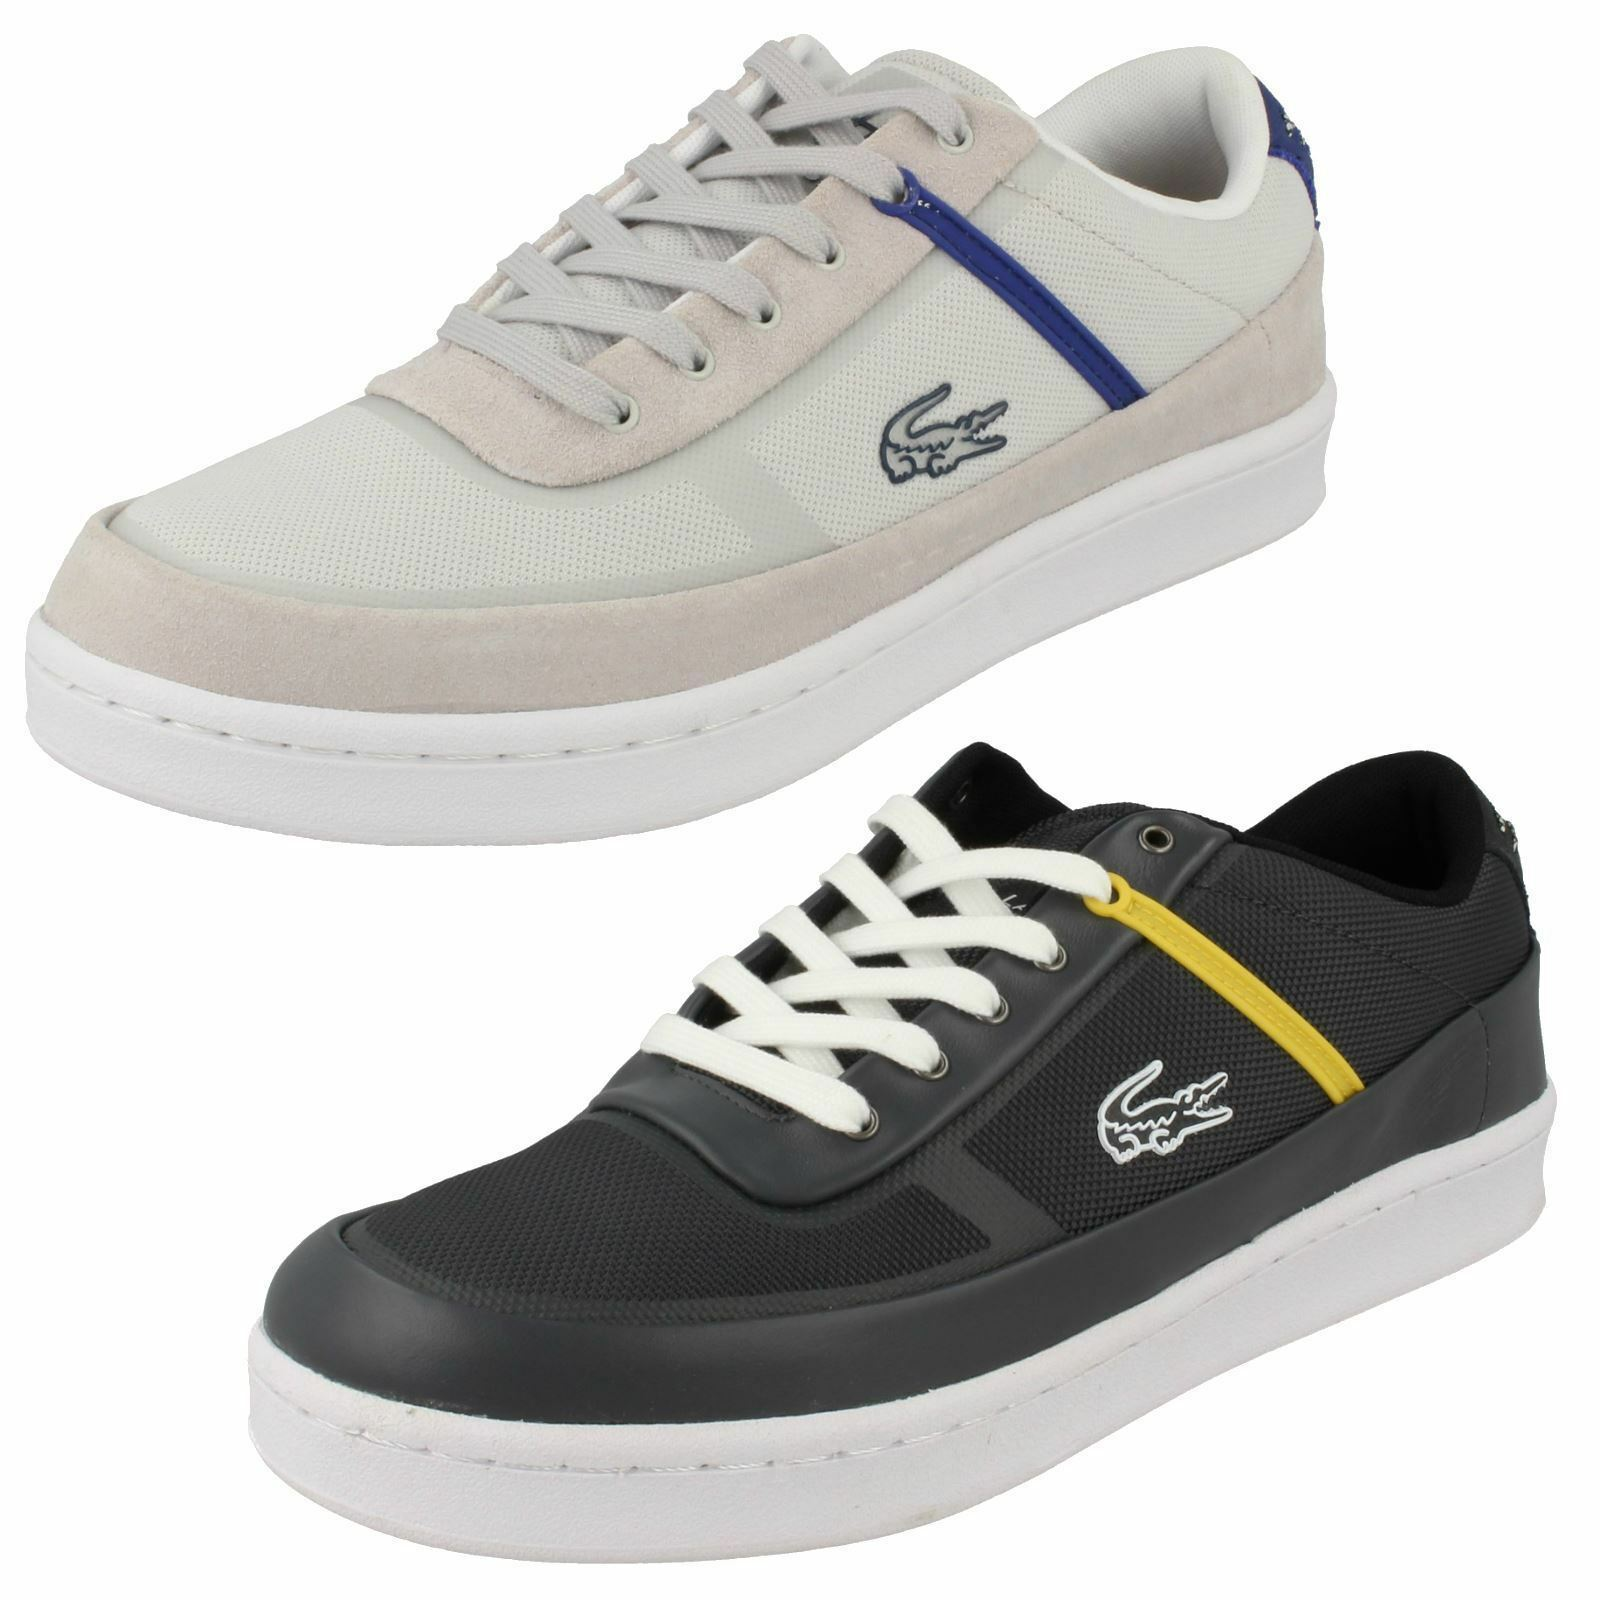 Hombre Lacoste Gris Trainers Court Line Lace Up Trainers Gris In Blanco And Negro f1e6d5